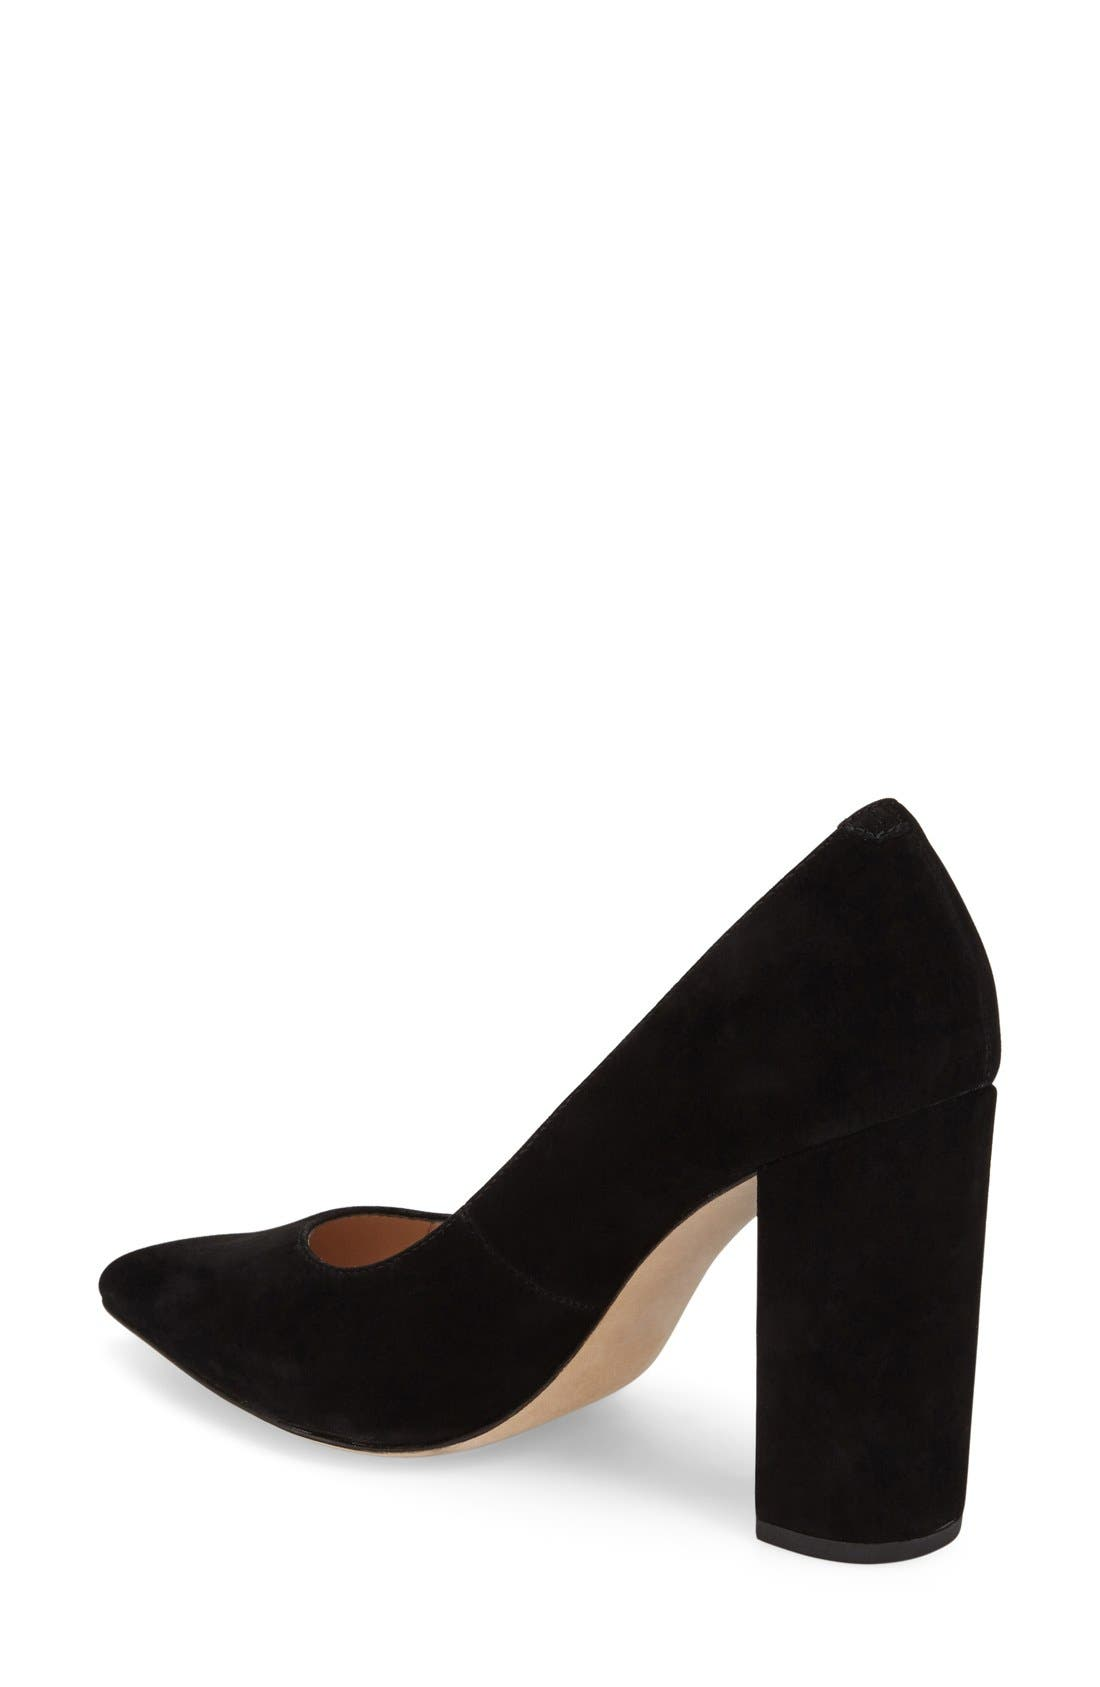 'Celina' Pointy Toe Pump,                             Alternate thumbnail 7, color,